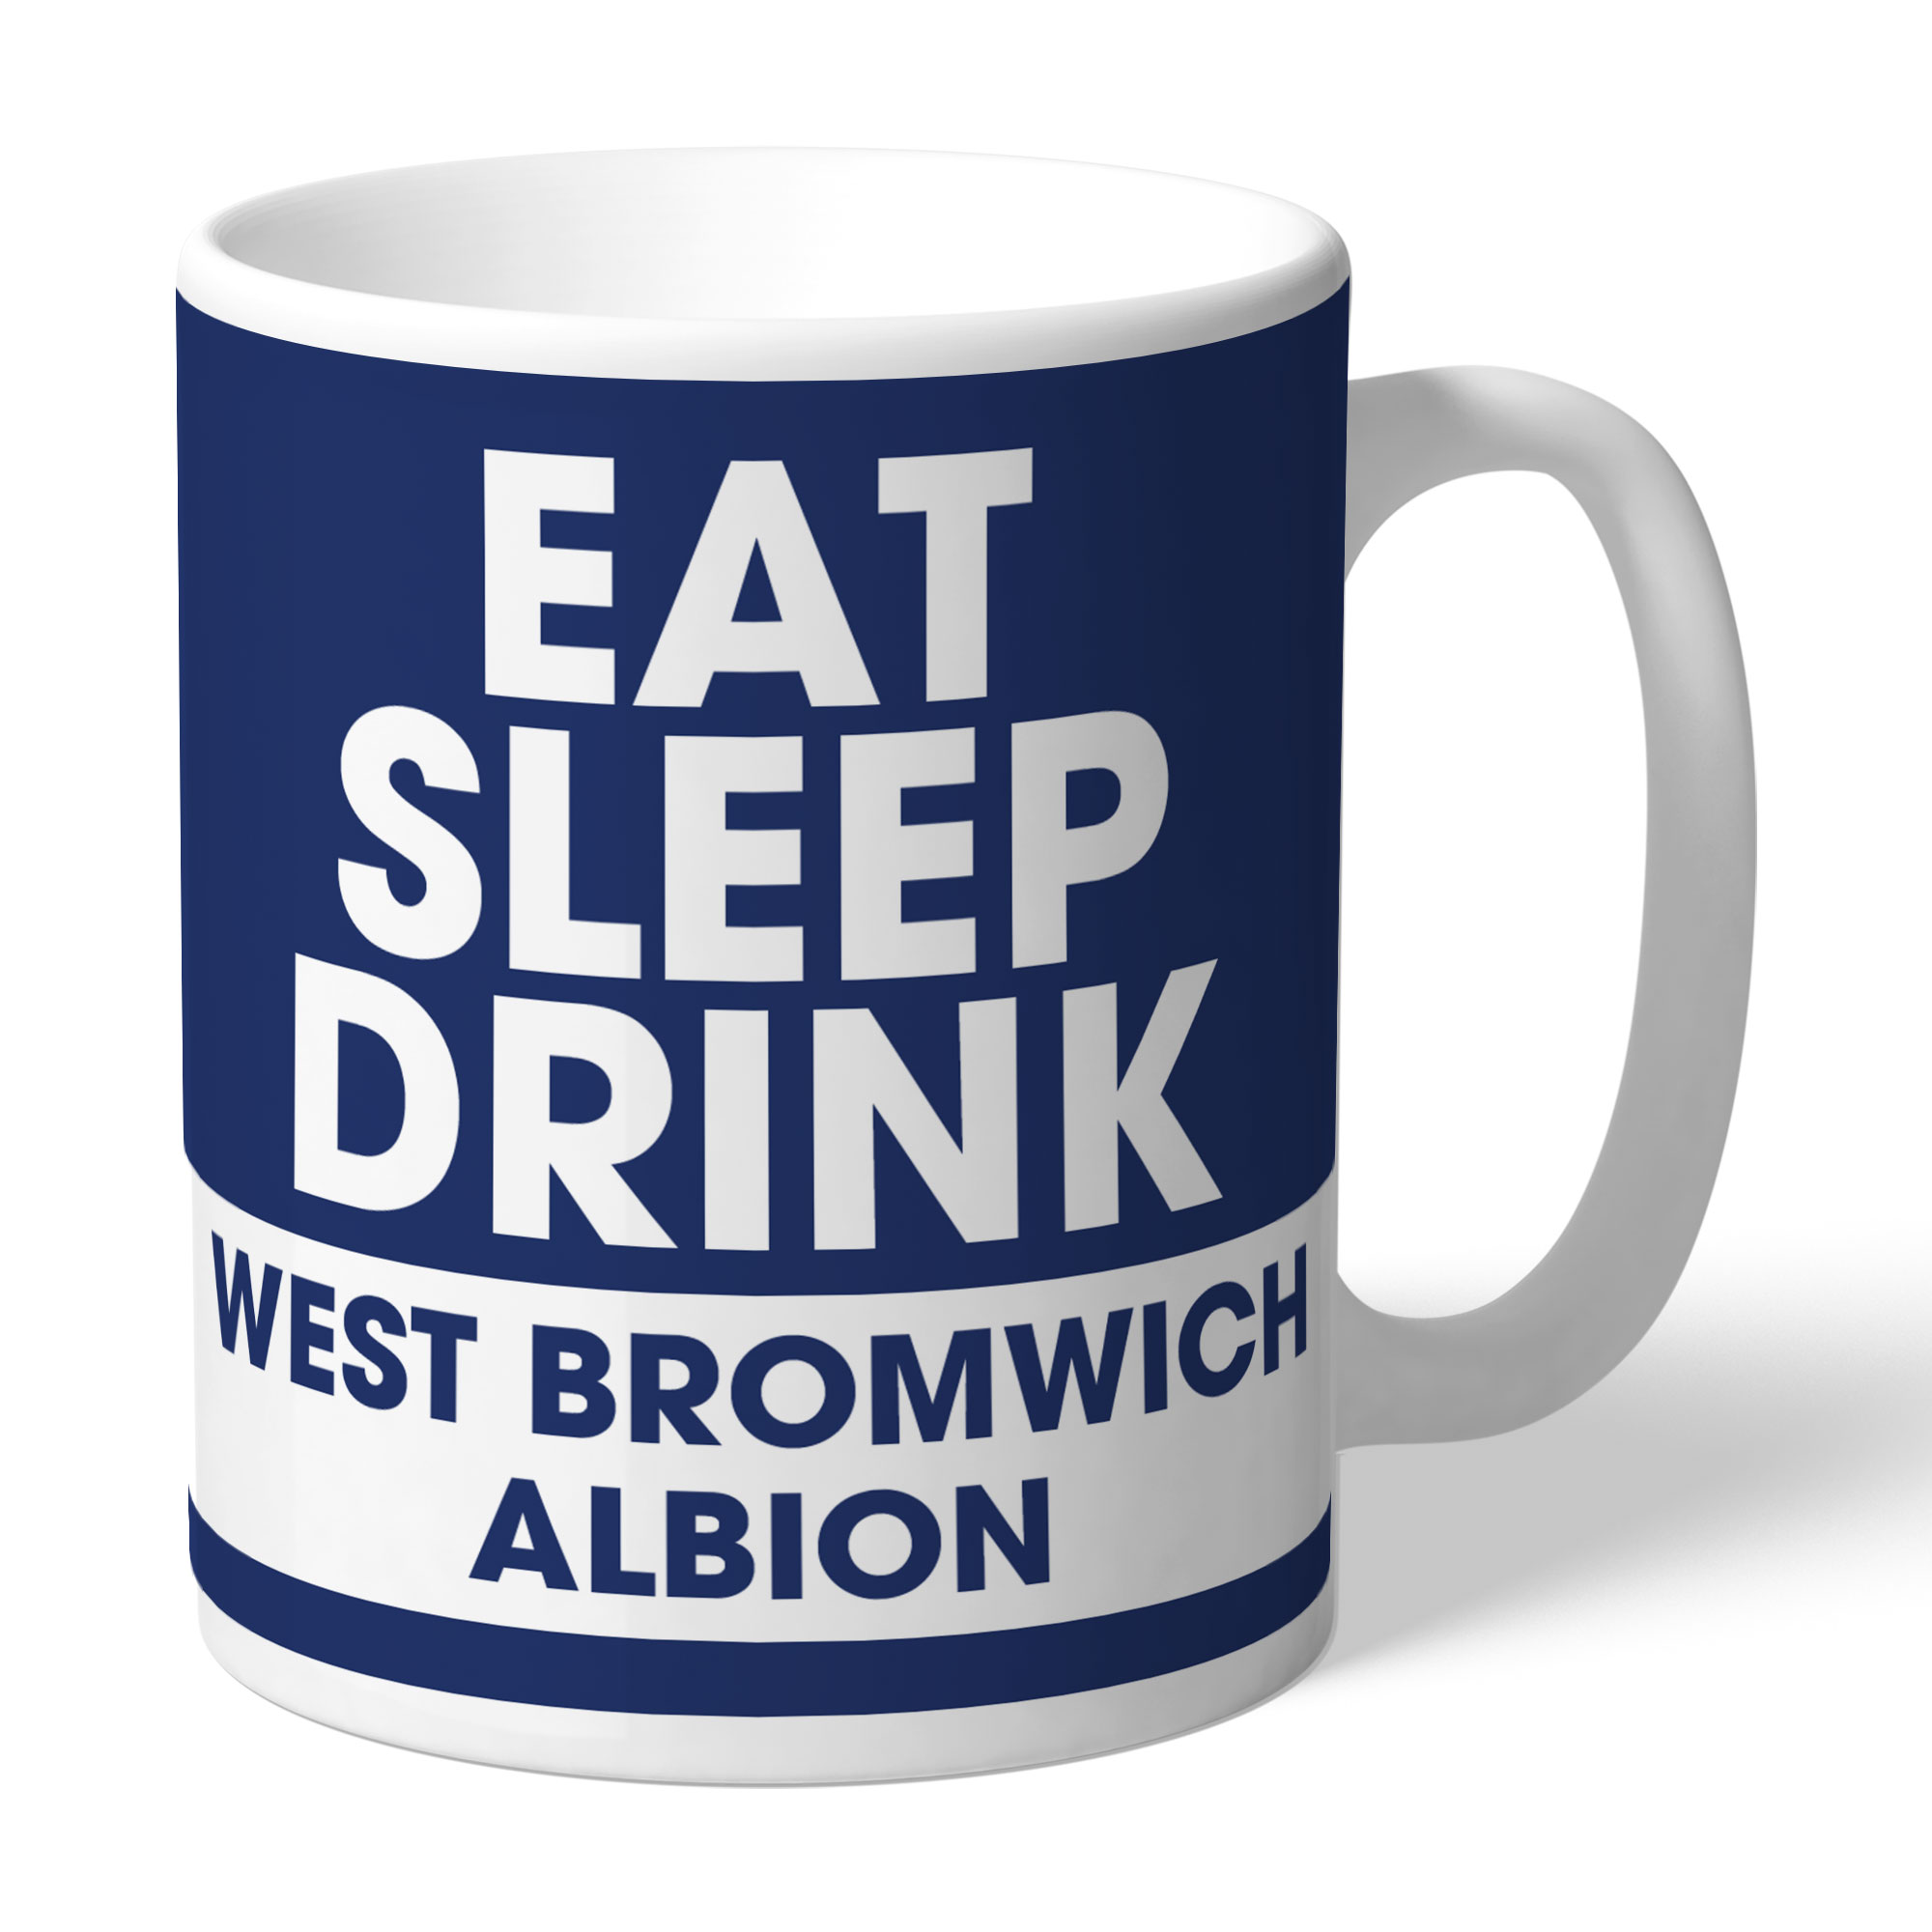 West Bromwich Albion FC Eat Sleep Drink Mug